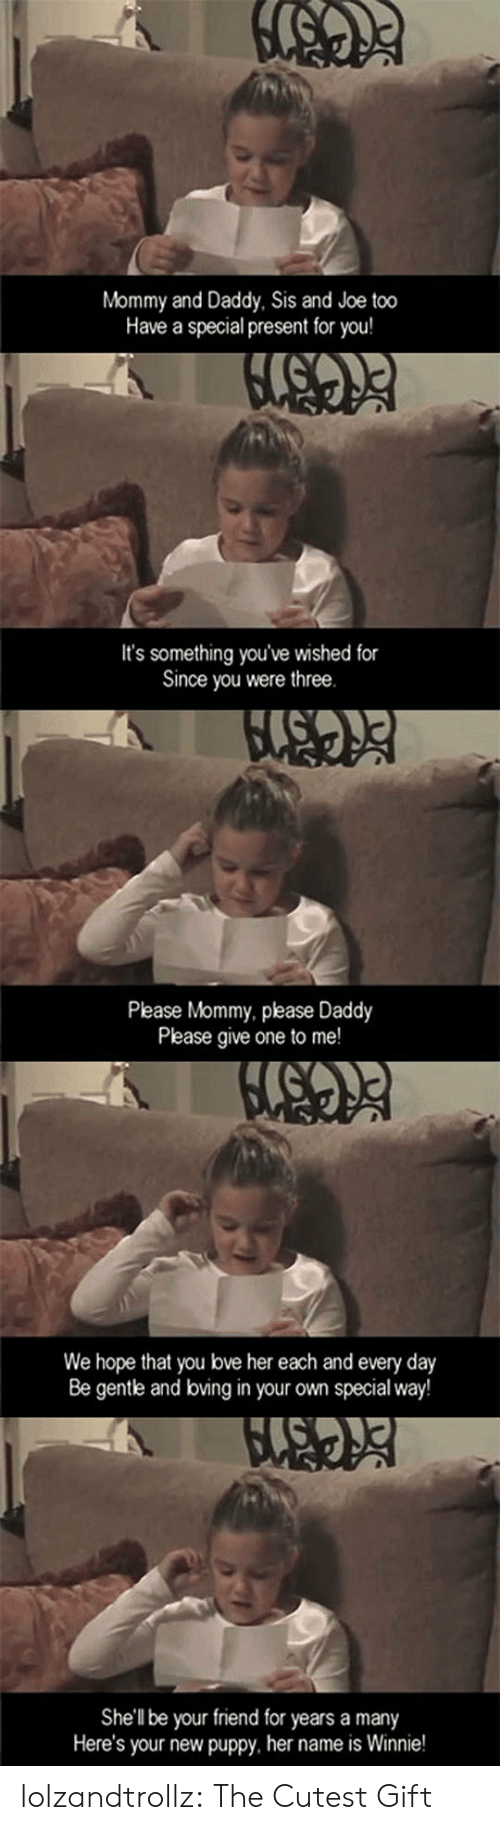 Daddy Please: Mommy and Daddy, Sis and Joe too  Have a special present for you!  It's something you've wished for  Since you were three.  Please Mommy, please Daddy  Please give one to me!  We hope that you bve her each and every day  Be gentle and boving in your own special way!  She'll be your friend for years a many  Here's your new puppy, her name is Winnie! lolzandtrollz:  The Cutest Gift